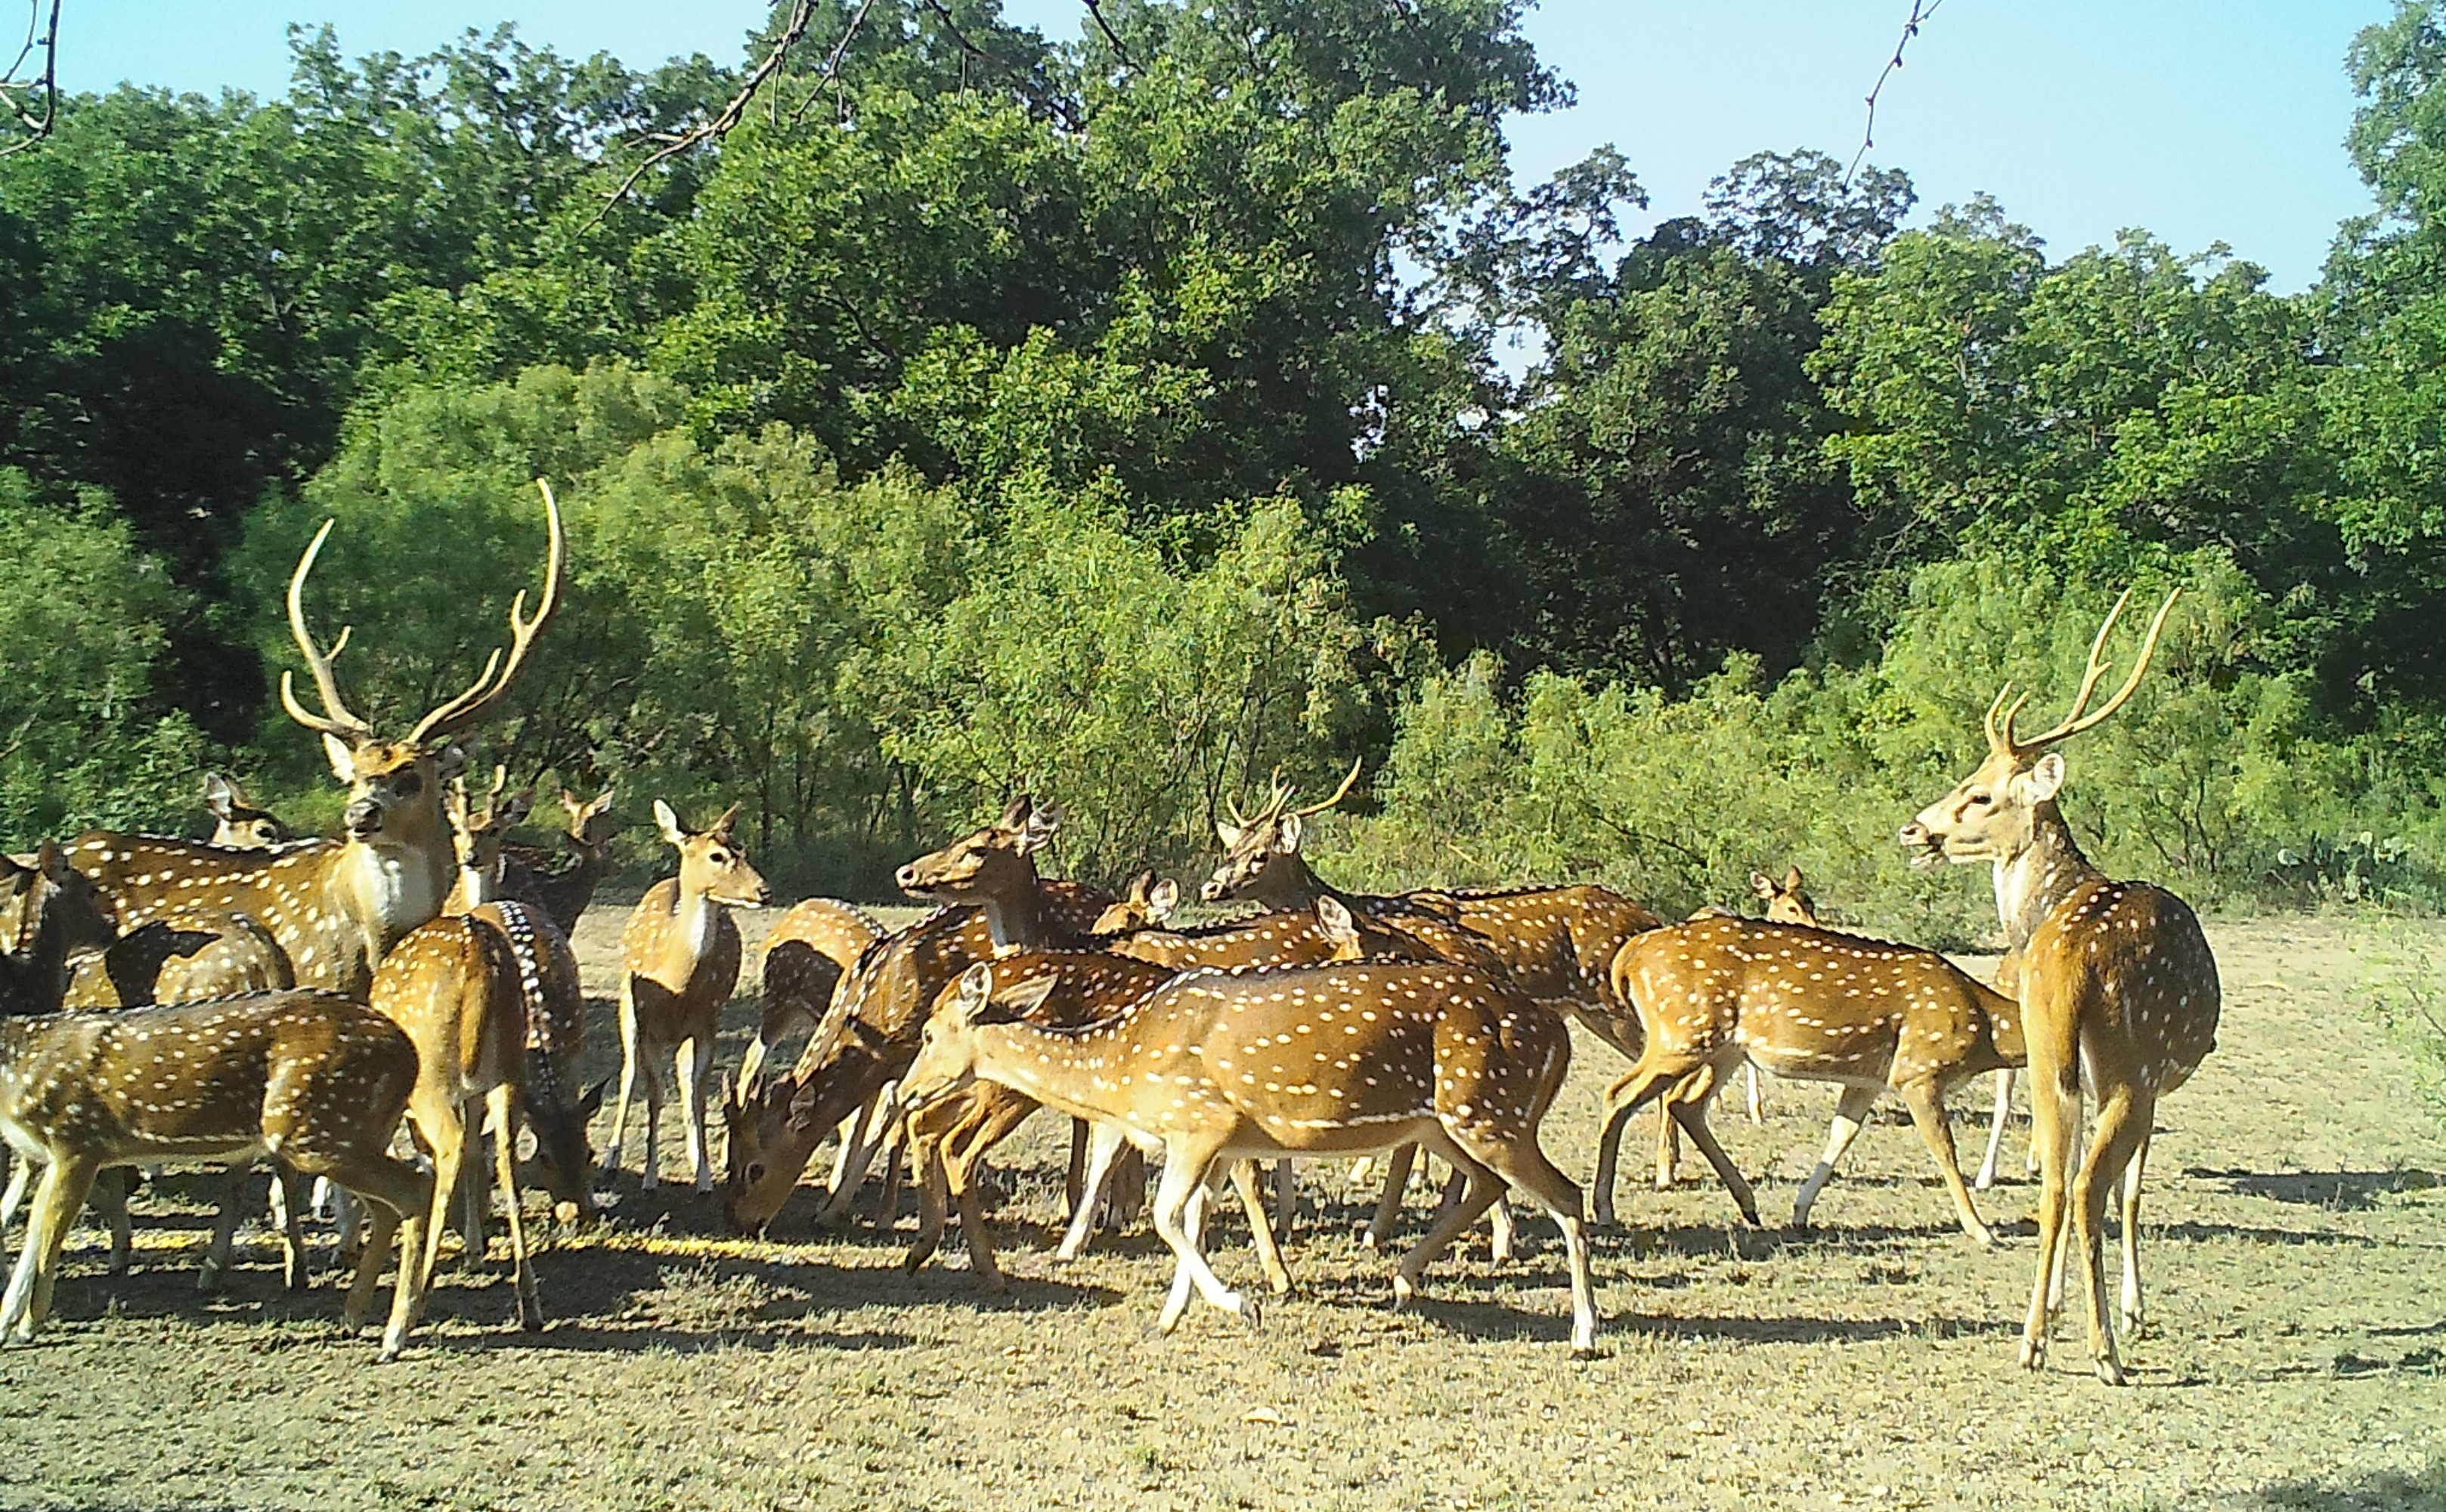 Axis deer population control in Texas